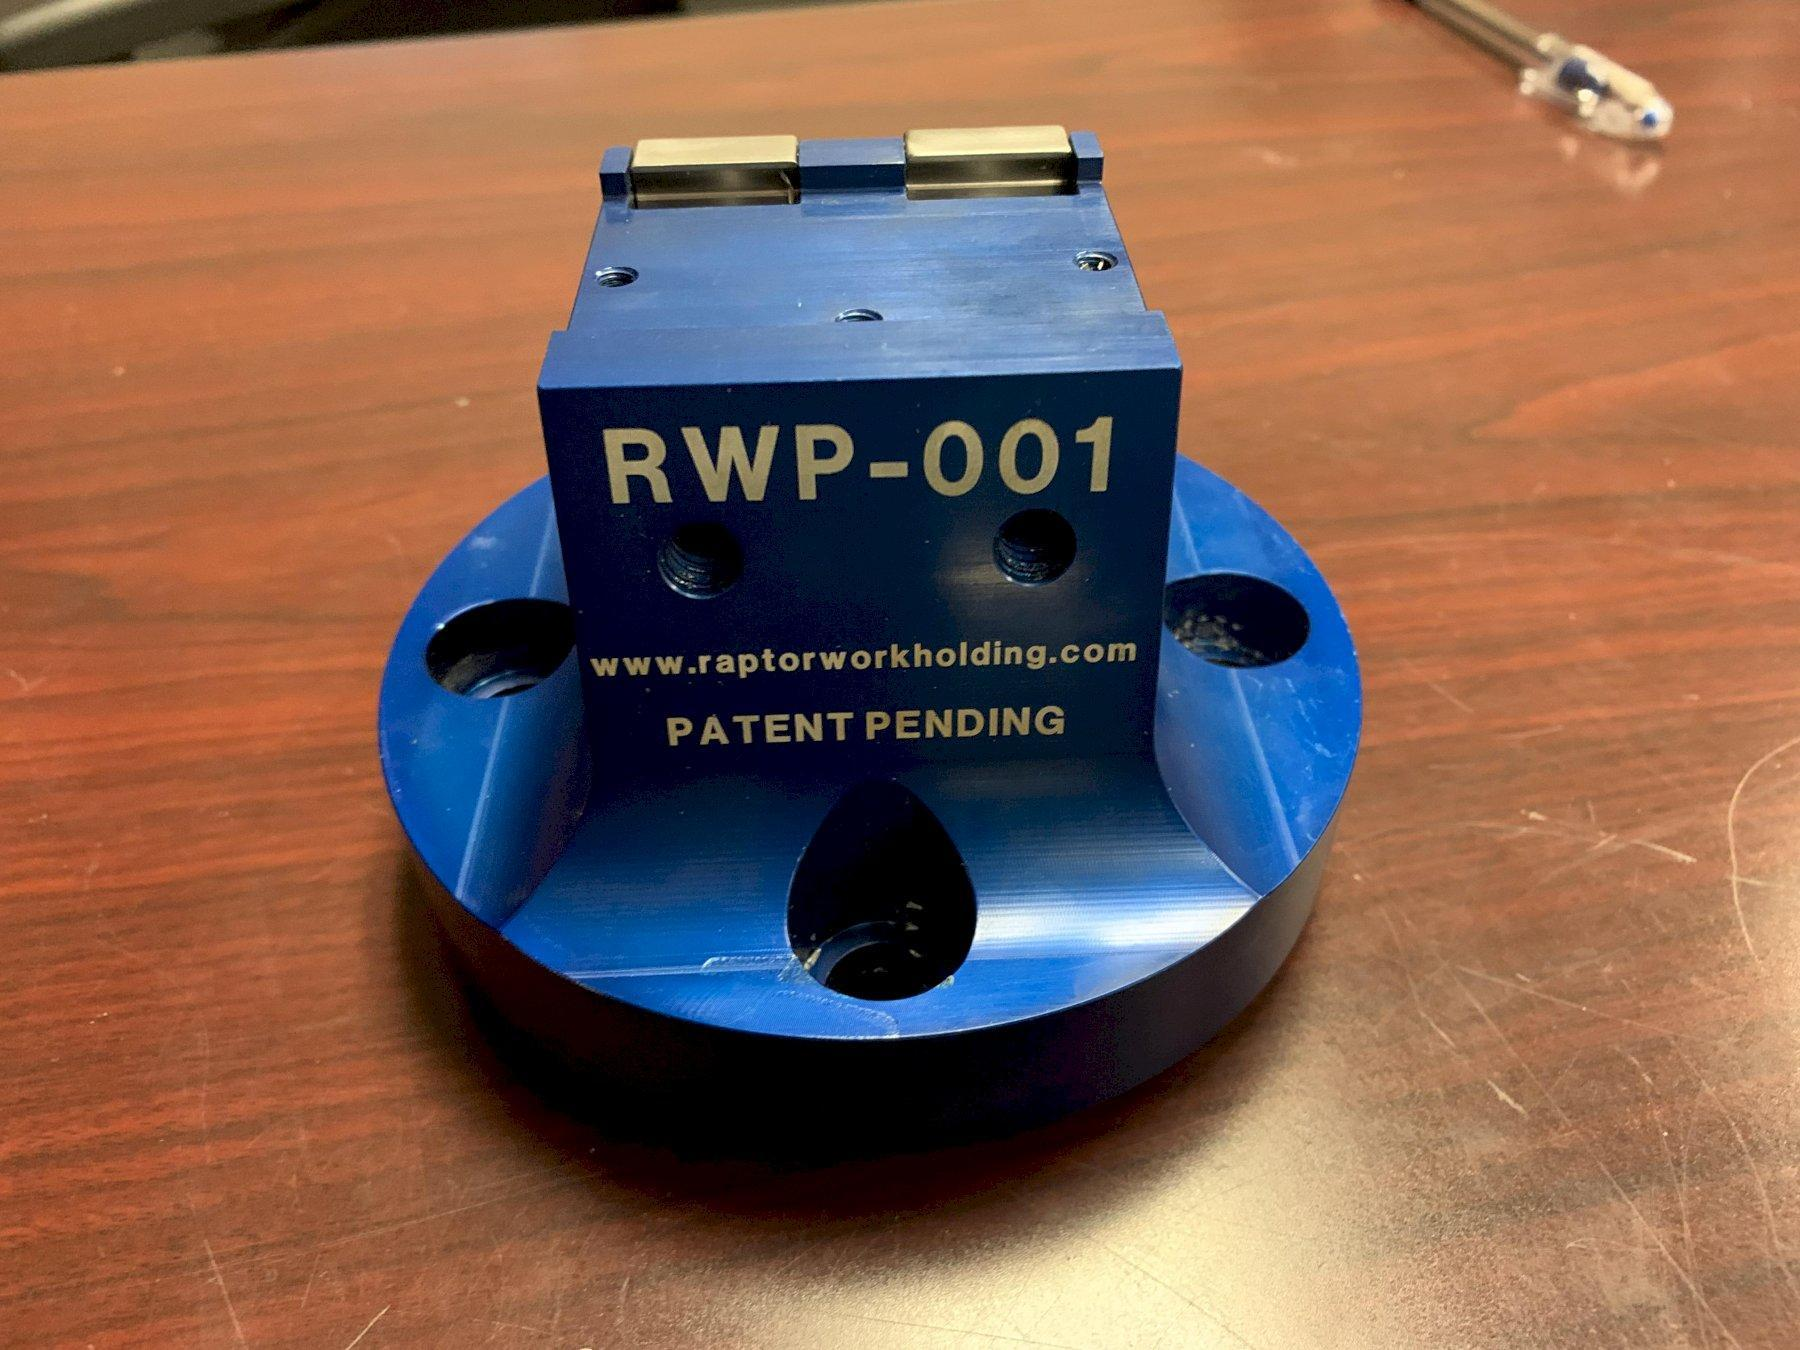 Raptor Dovetail Fixtures #RWP-012SS and #RWP-001.